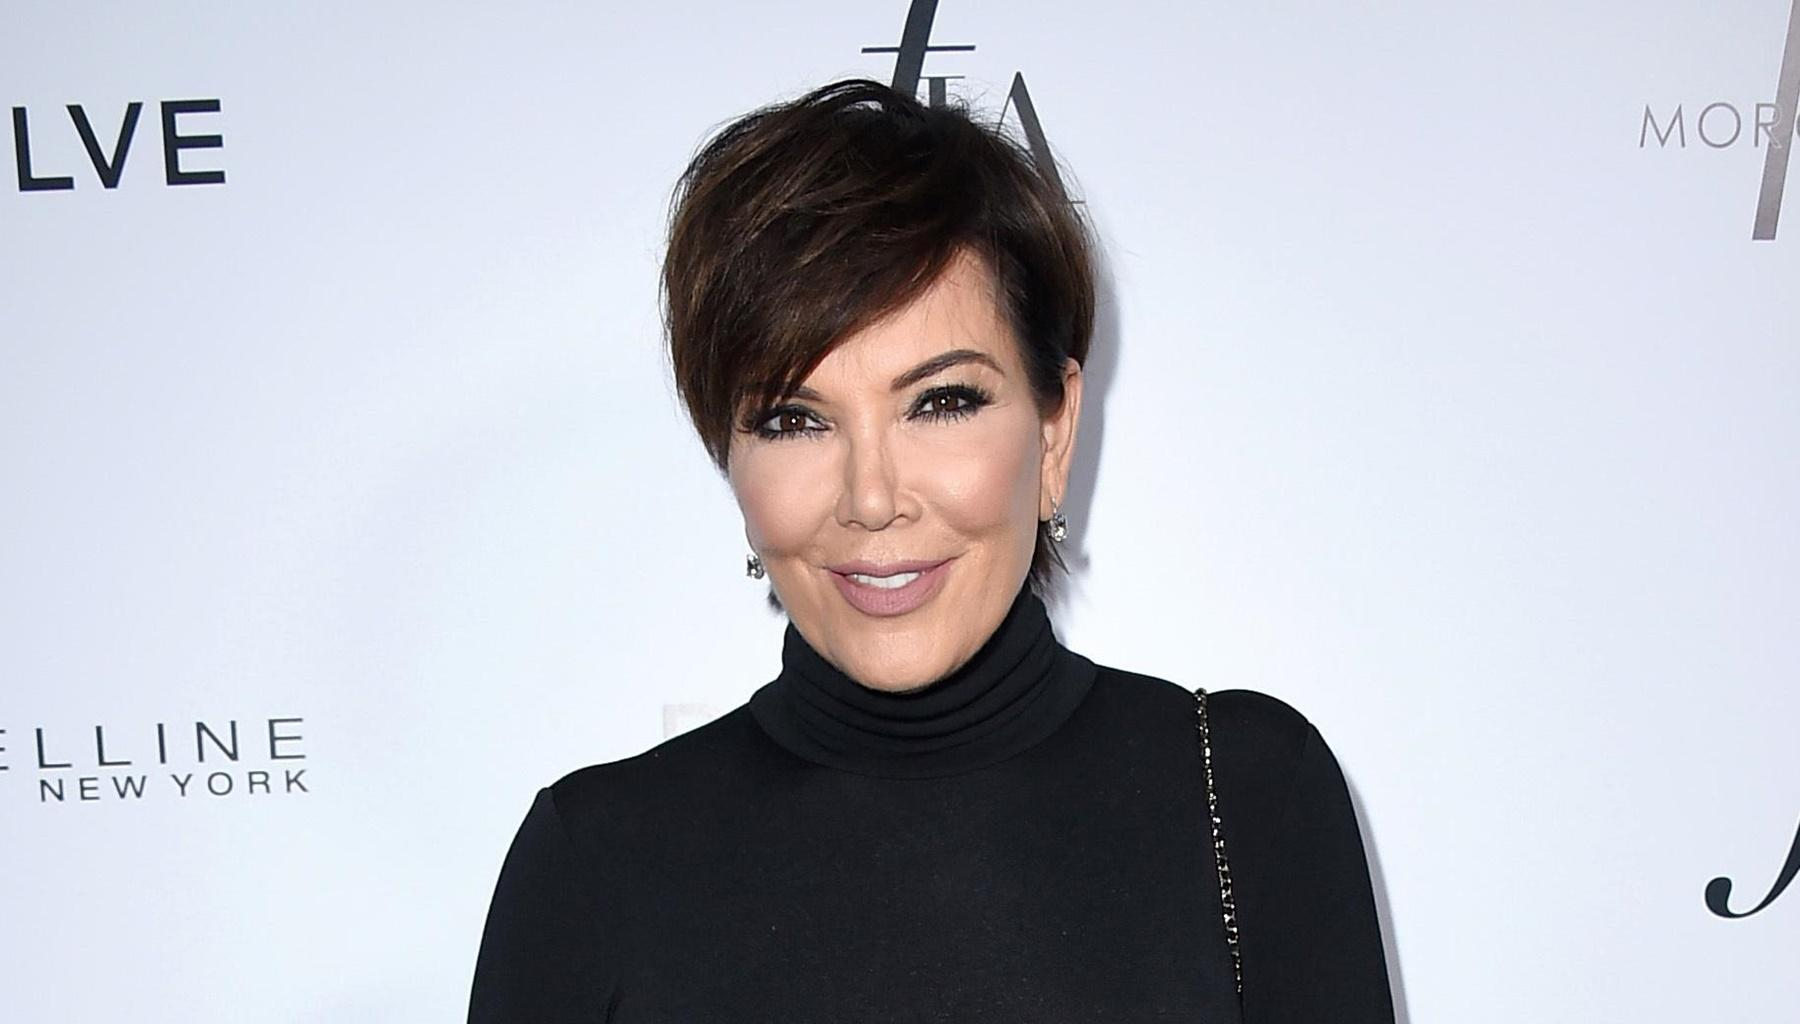 Kris Jenner Shares Bathing Suit Picture And Some Bring Up O. J. Simpson